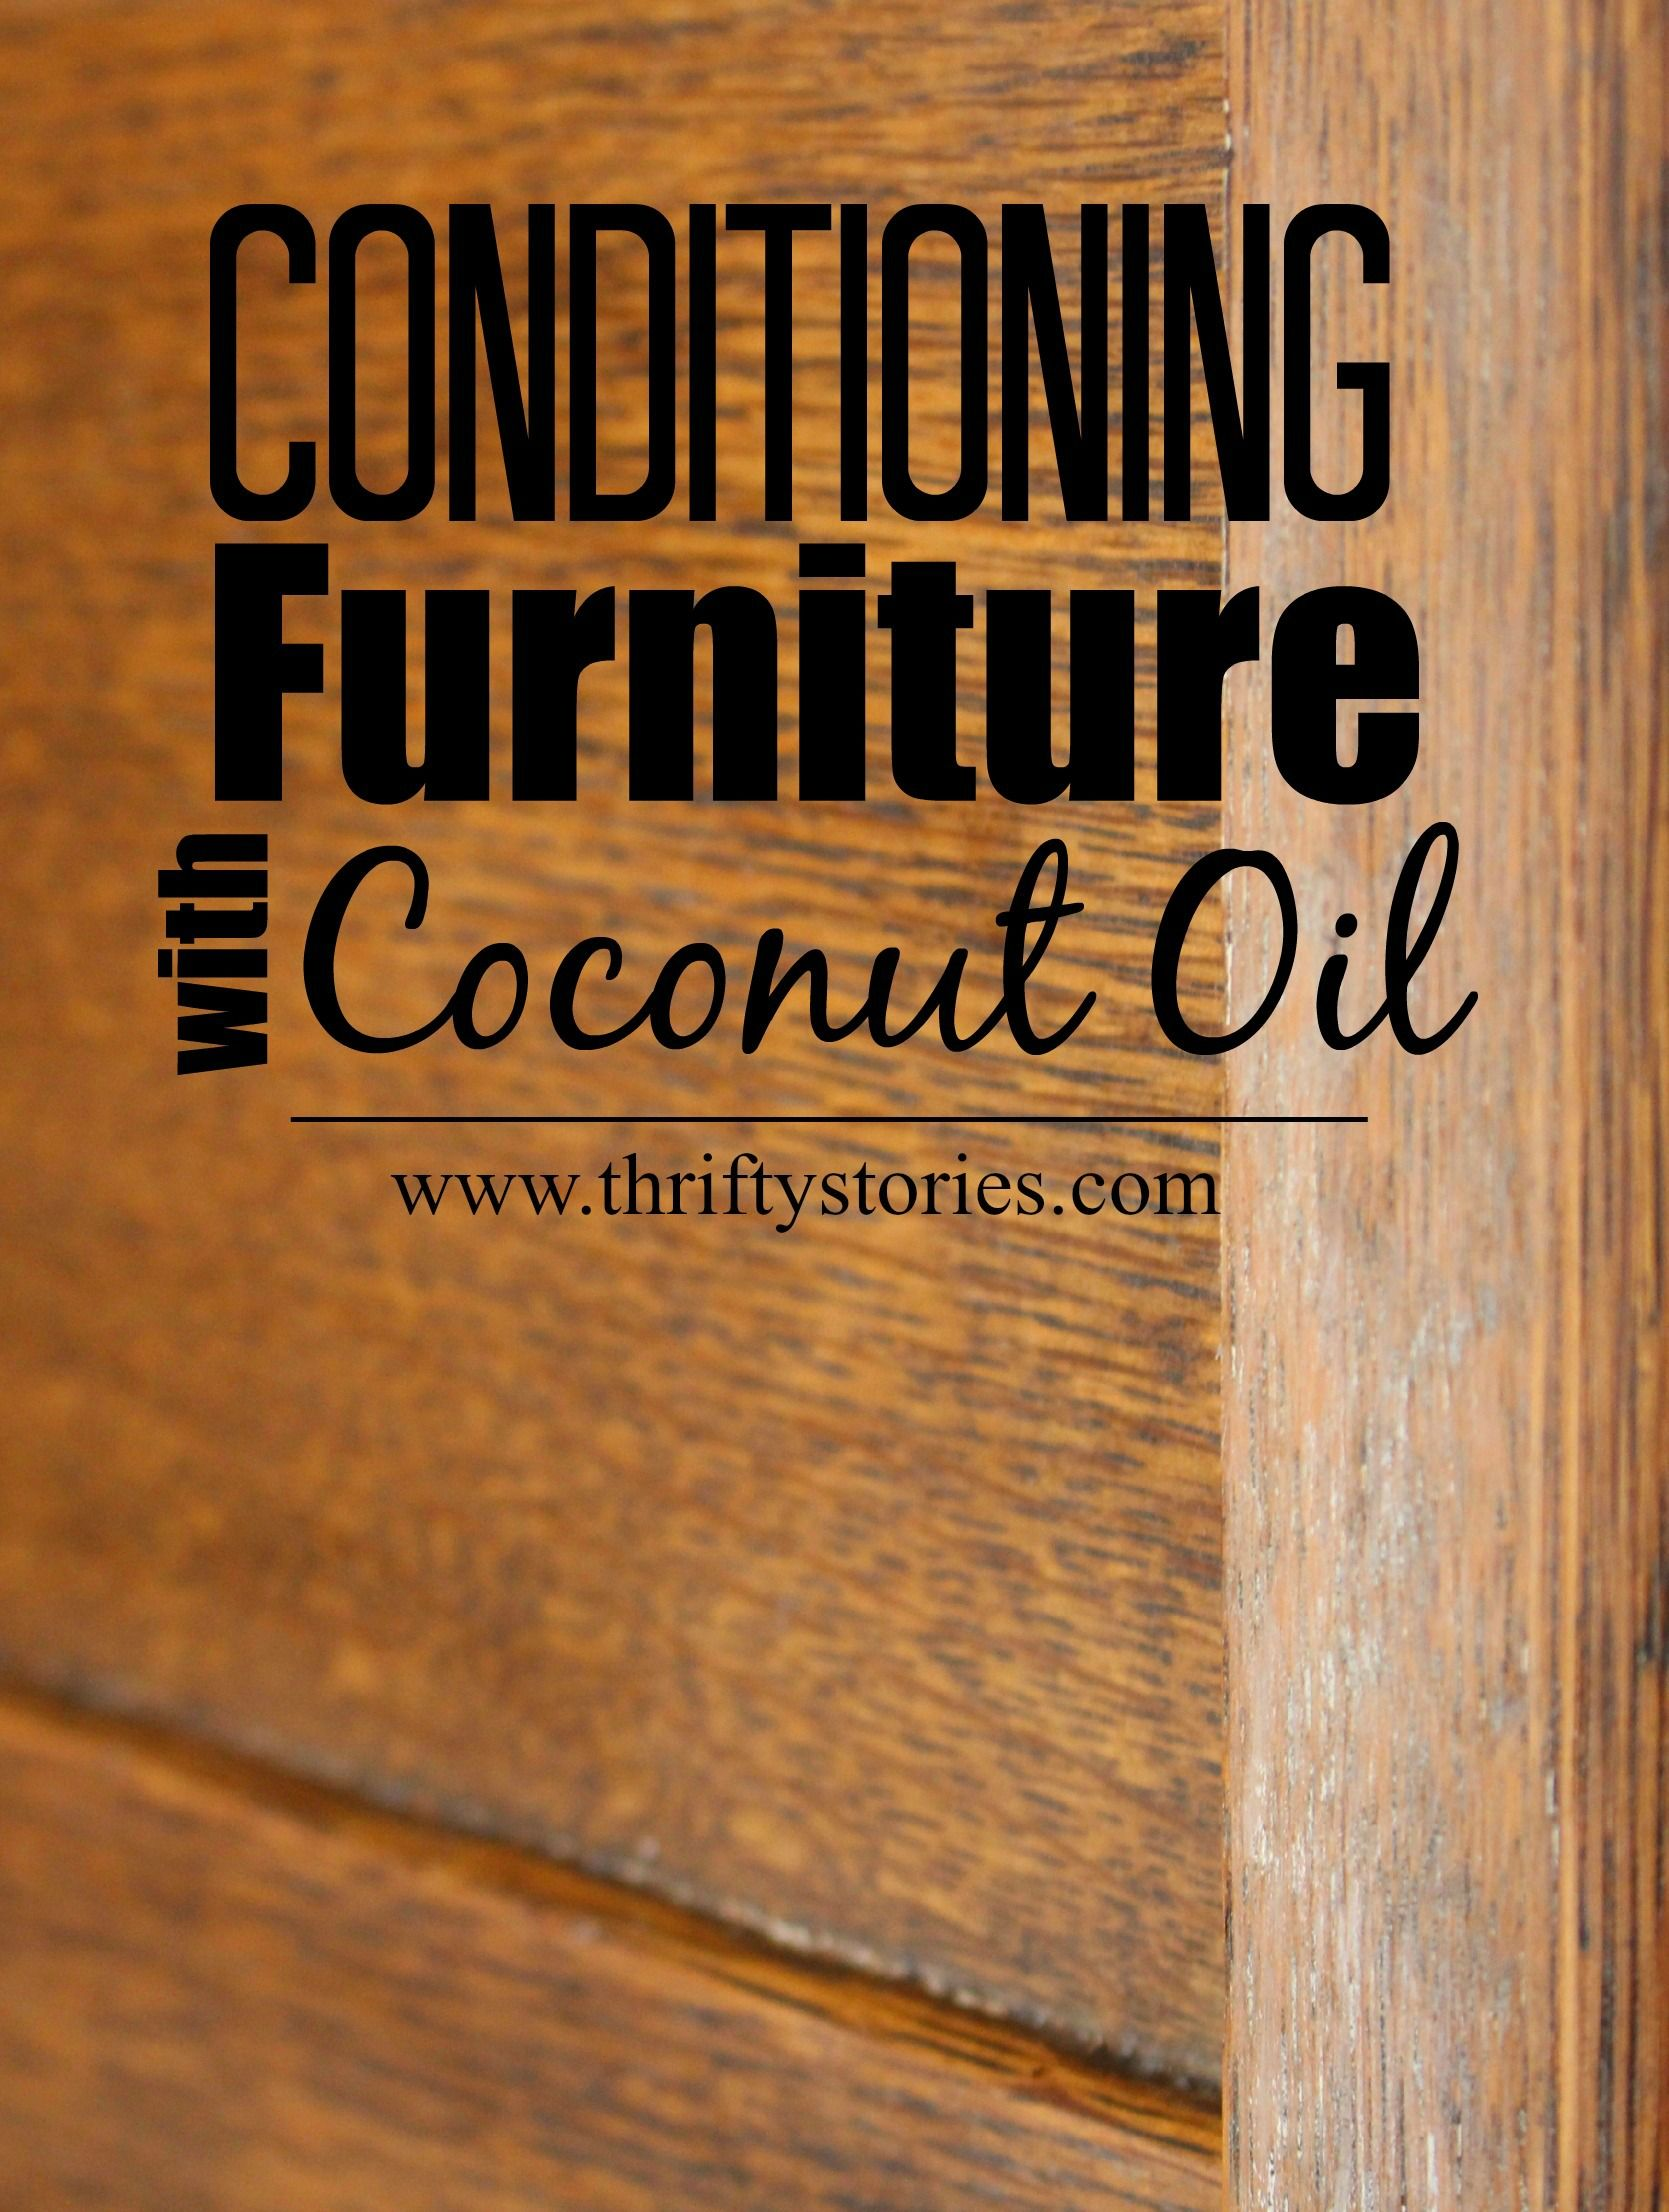 Conditioning Furniture with Coconut Oil Diy cleaning